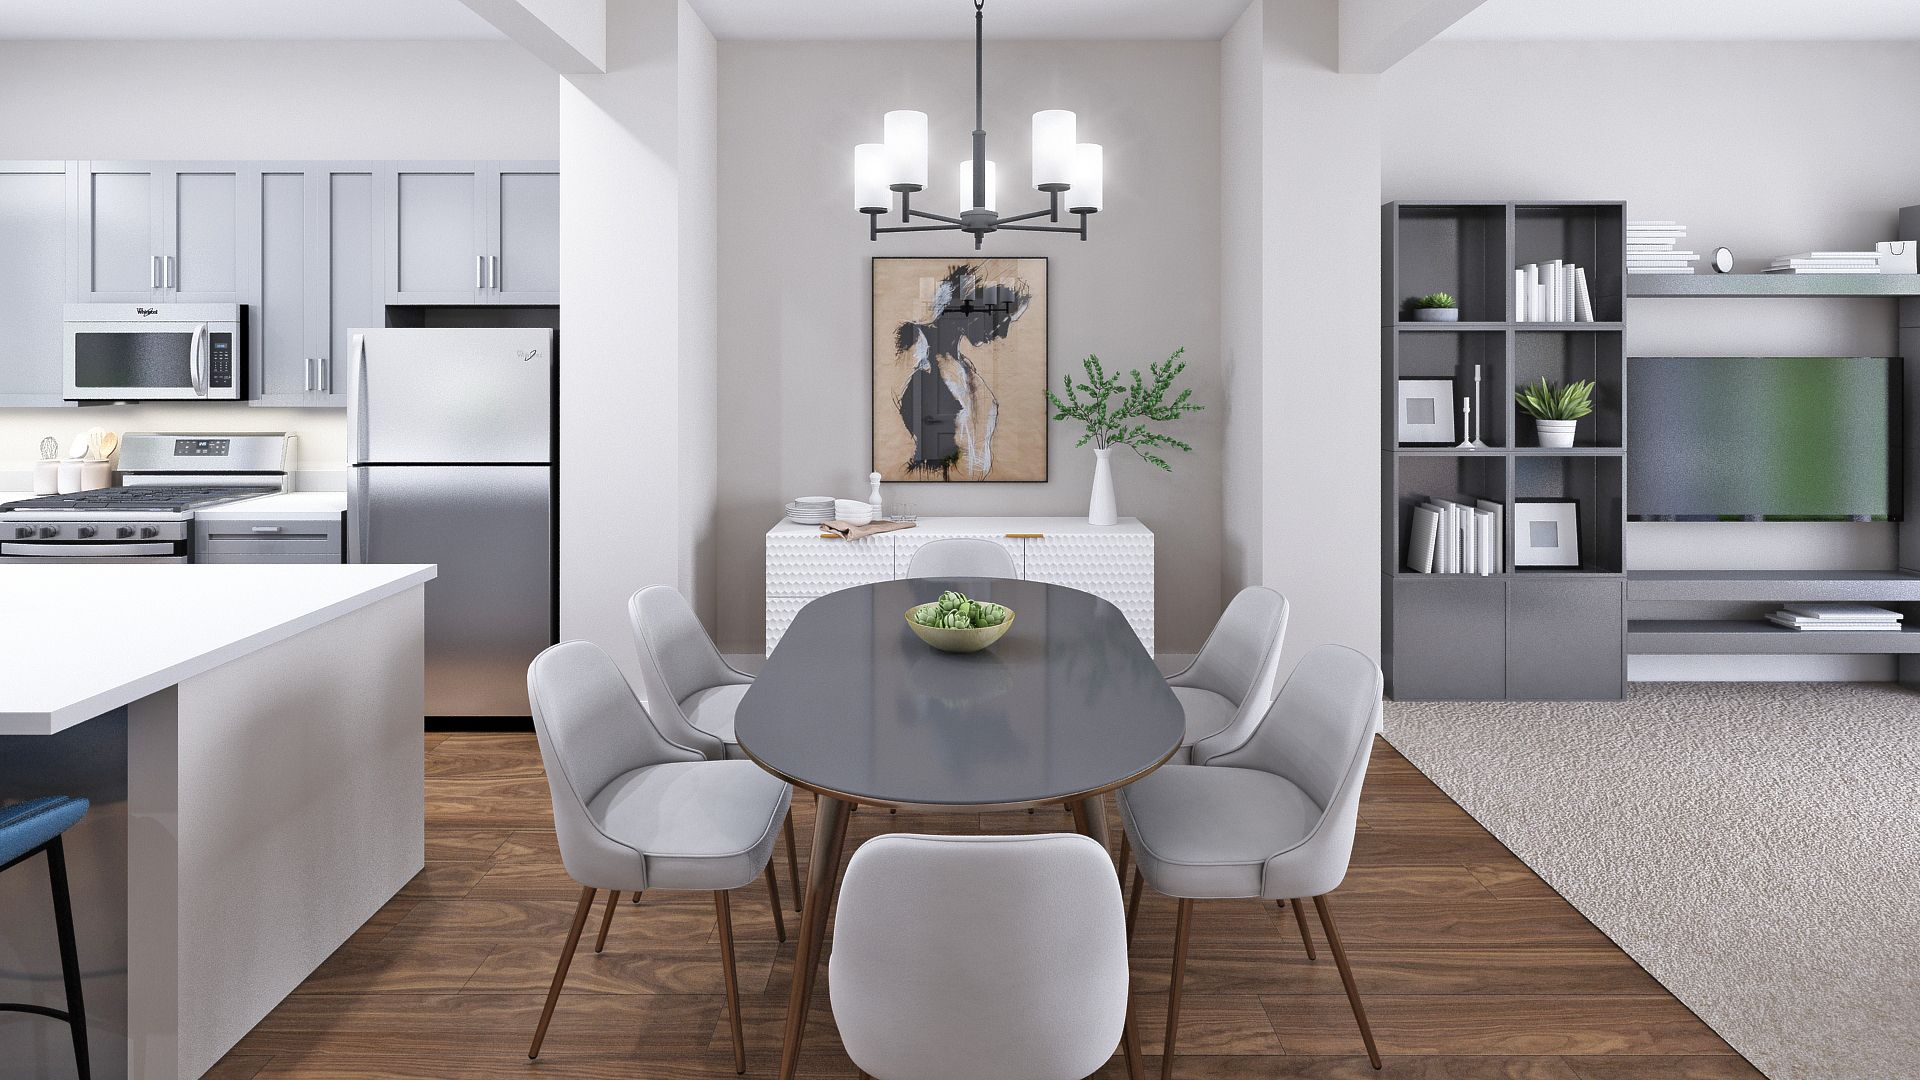 Kitchen featured in the B Plan By Koelbel Urban Homes in Denver, CO